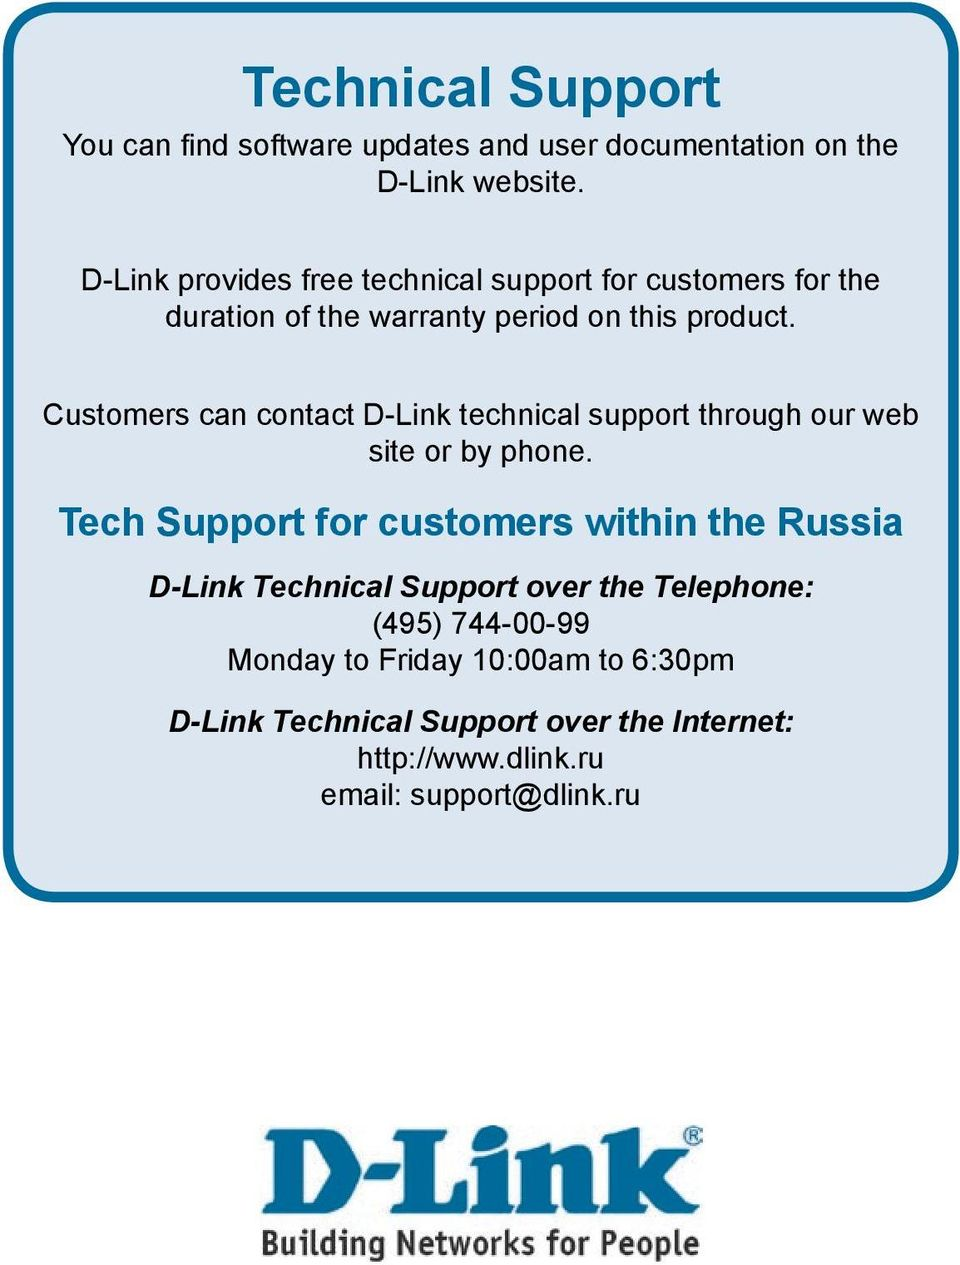 product. Customers can contact D-Link technical support through our web site or by phone.